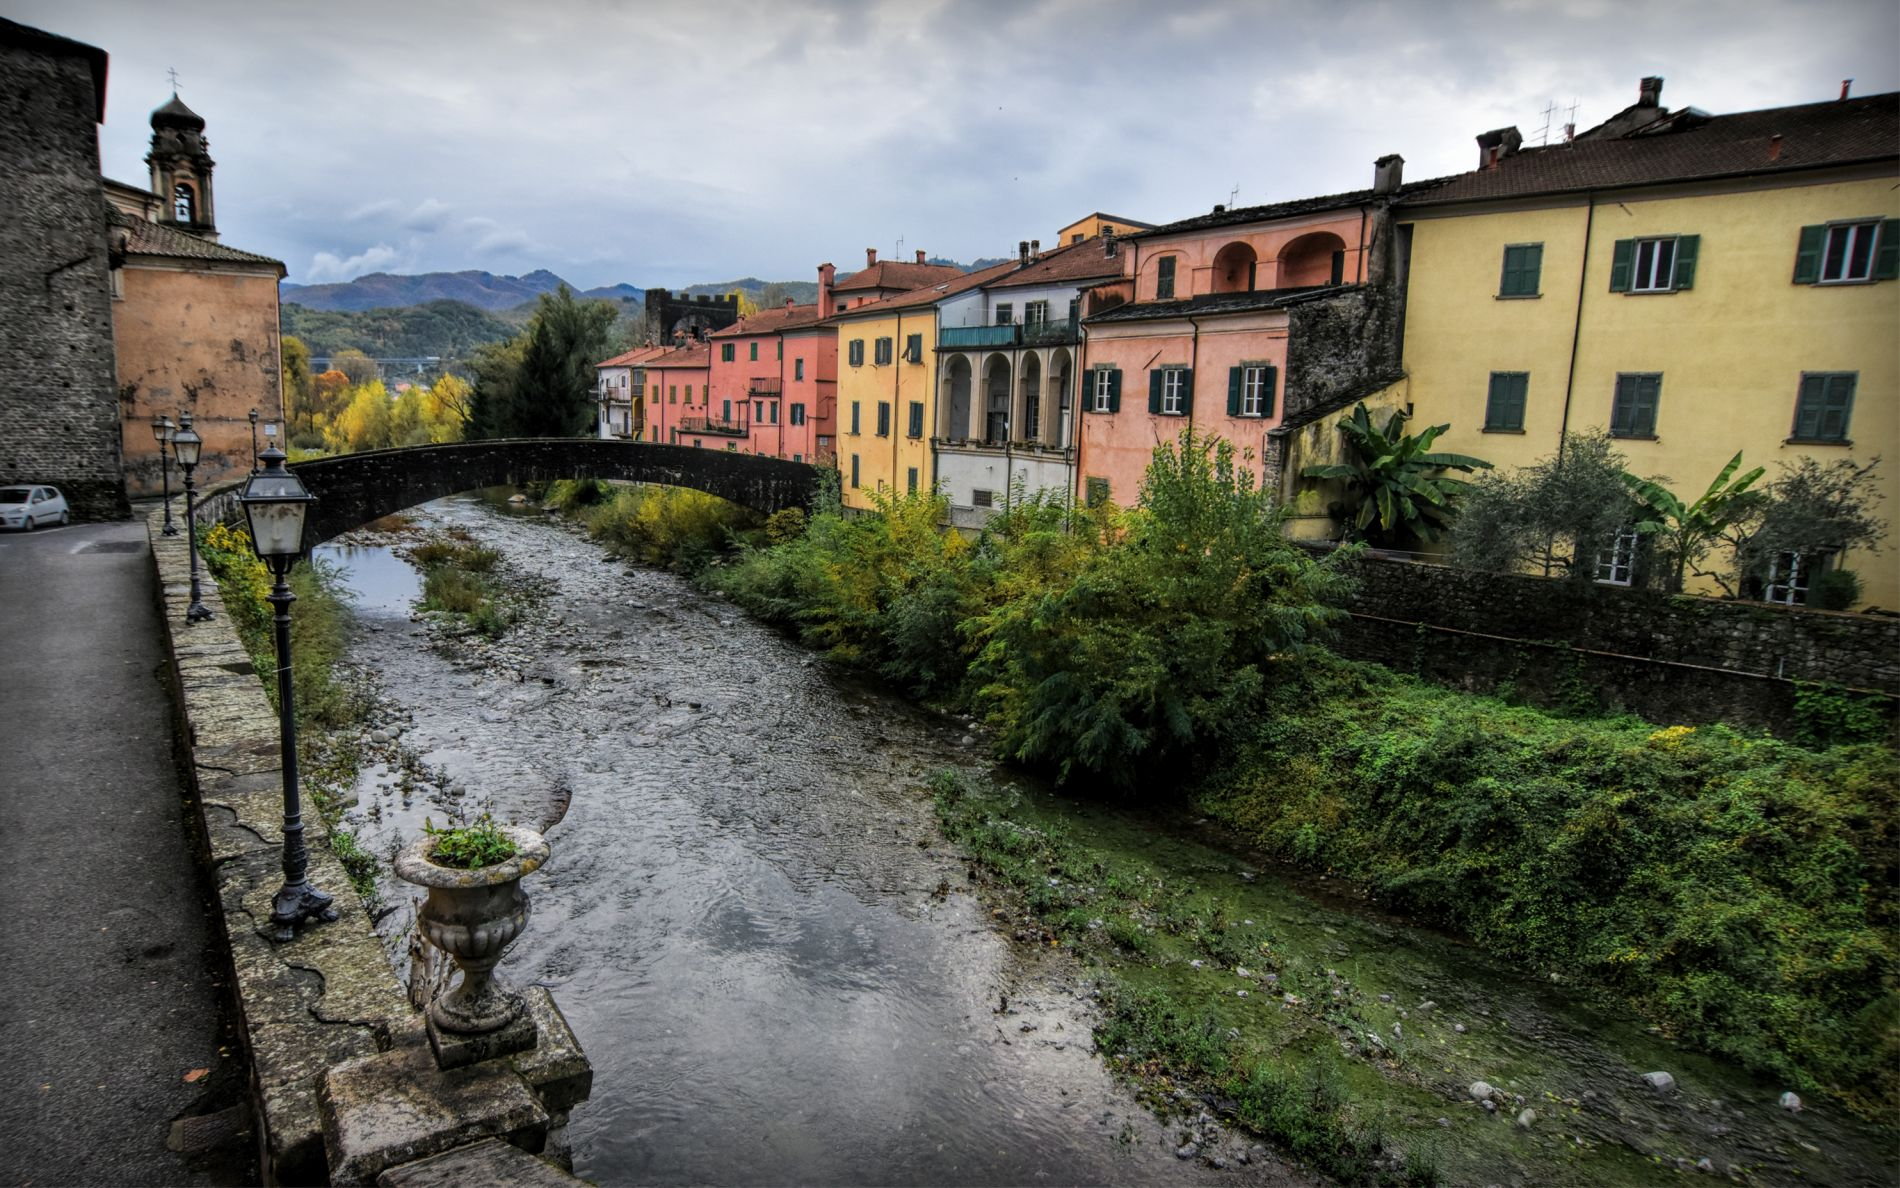 The Magra river in Pontremoli